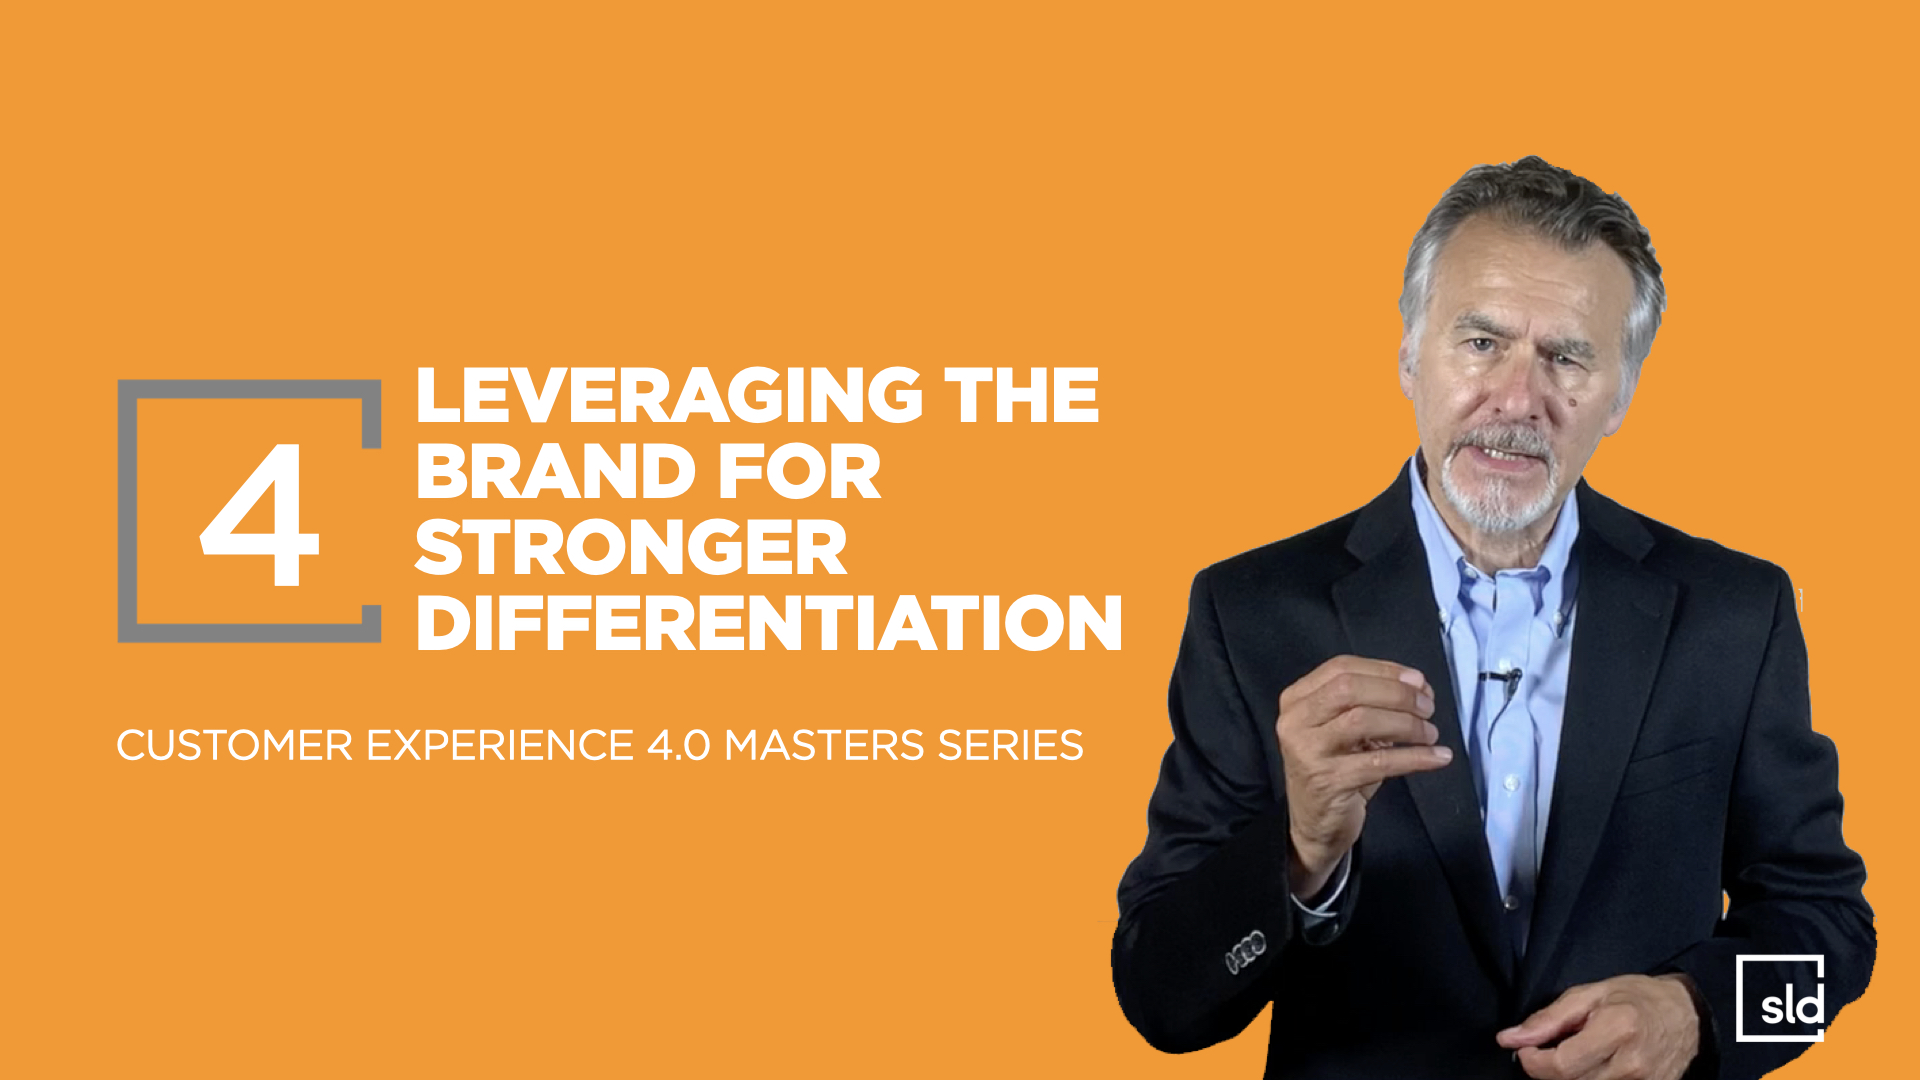 4. Leveraging the Brand for Stronger Differentiation